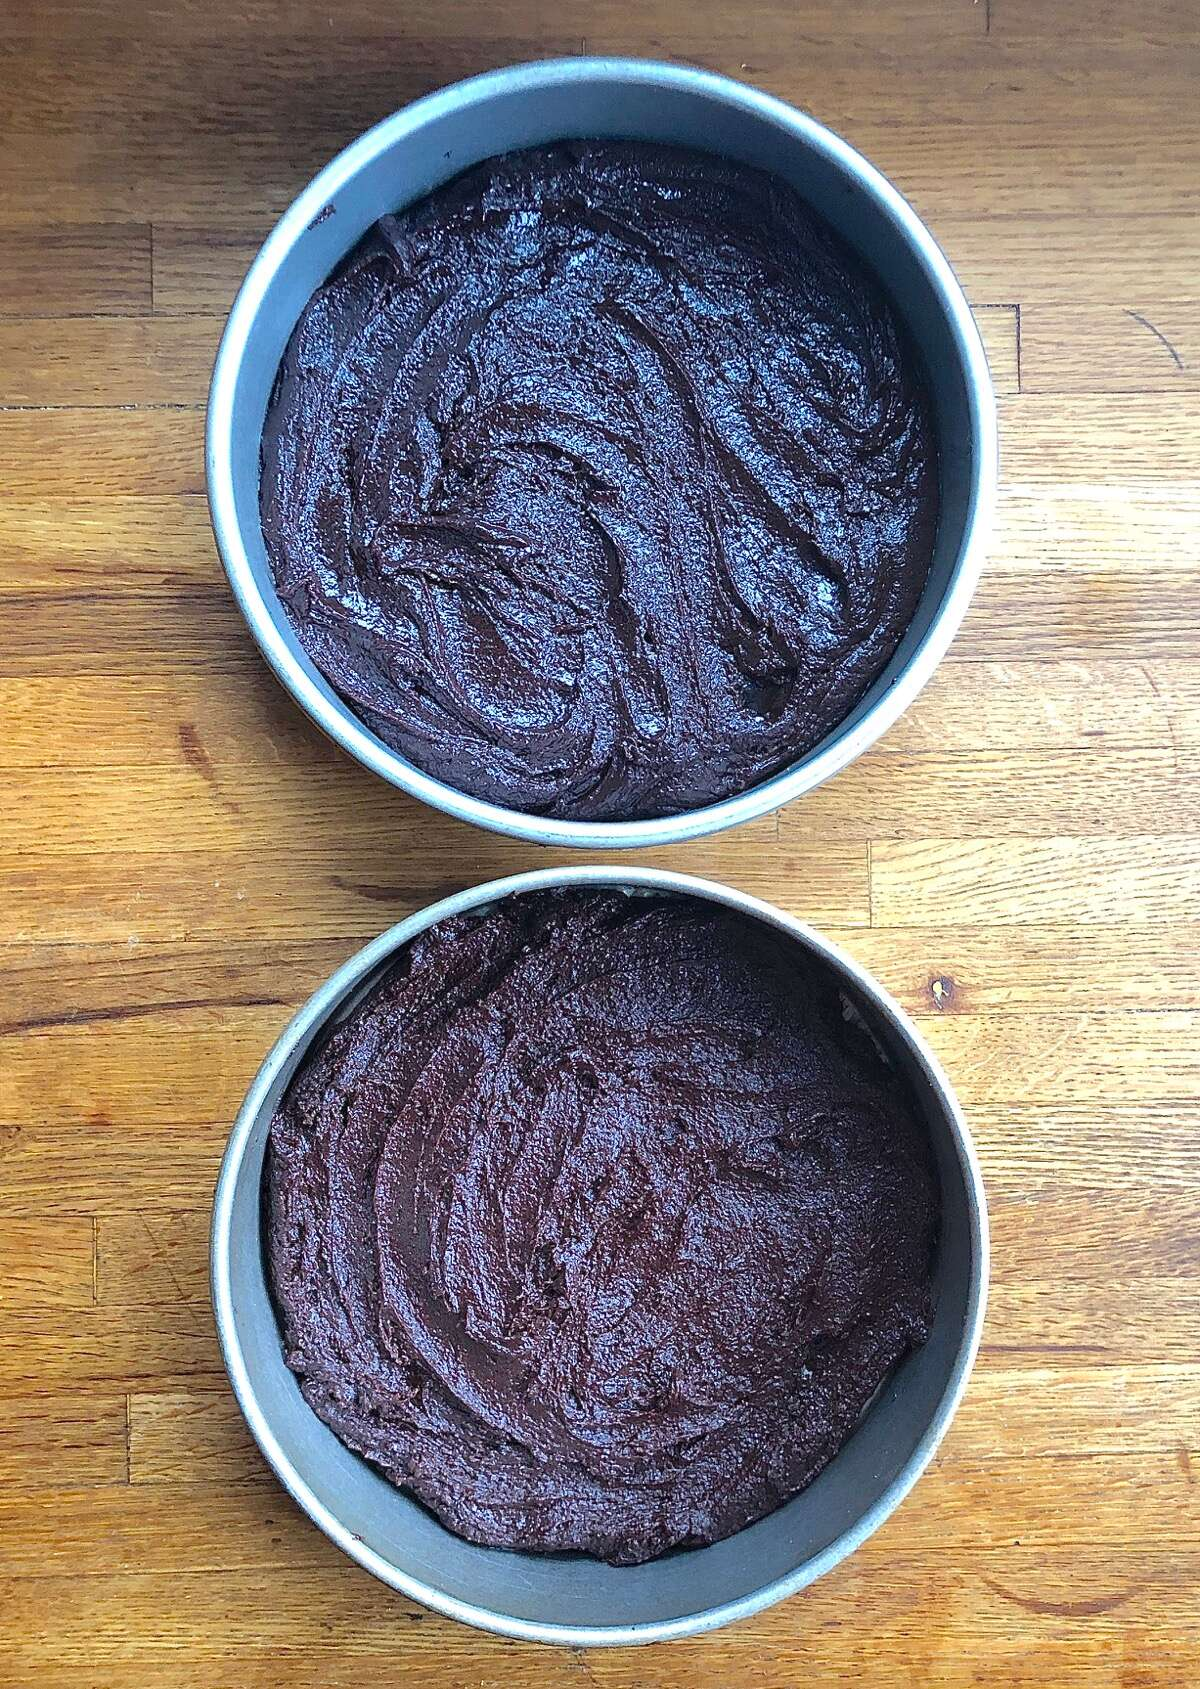 Two pans of brownie batter, one made with Truvia, one with granulated sugar